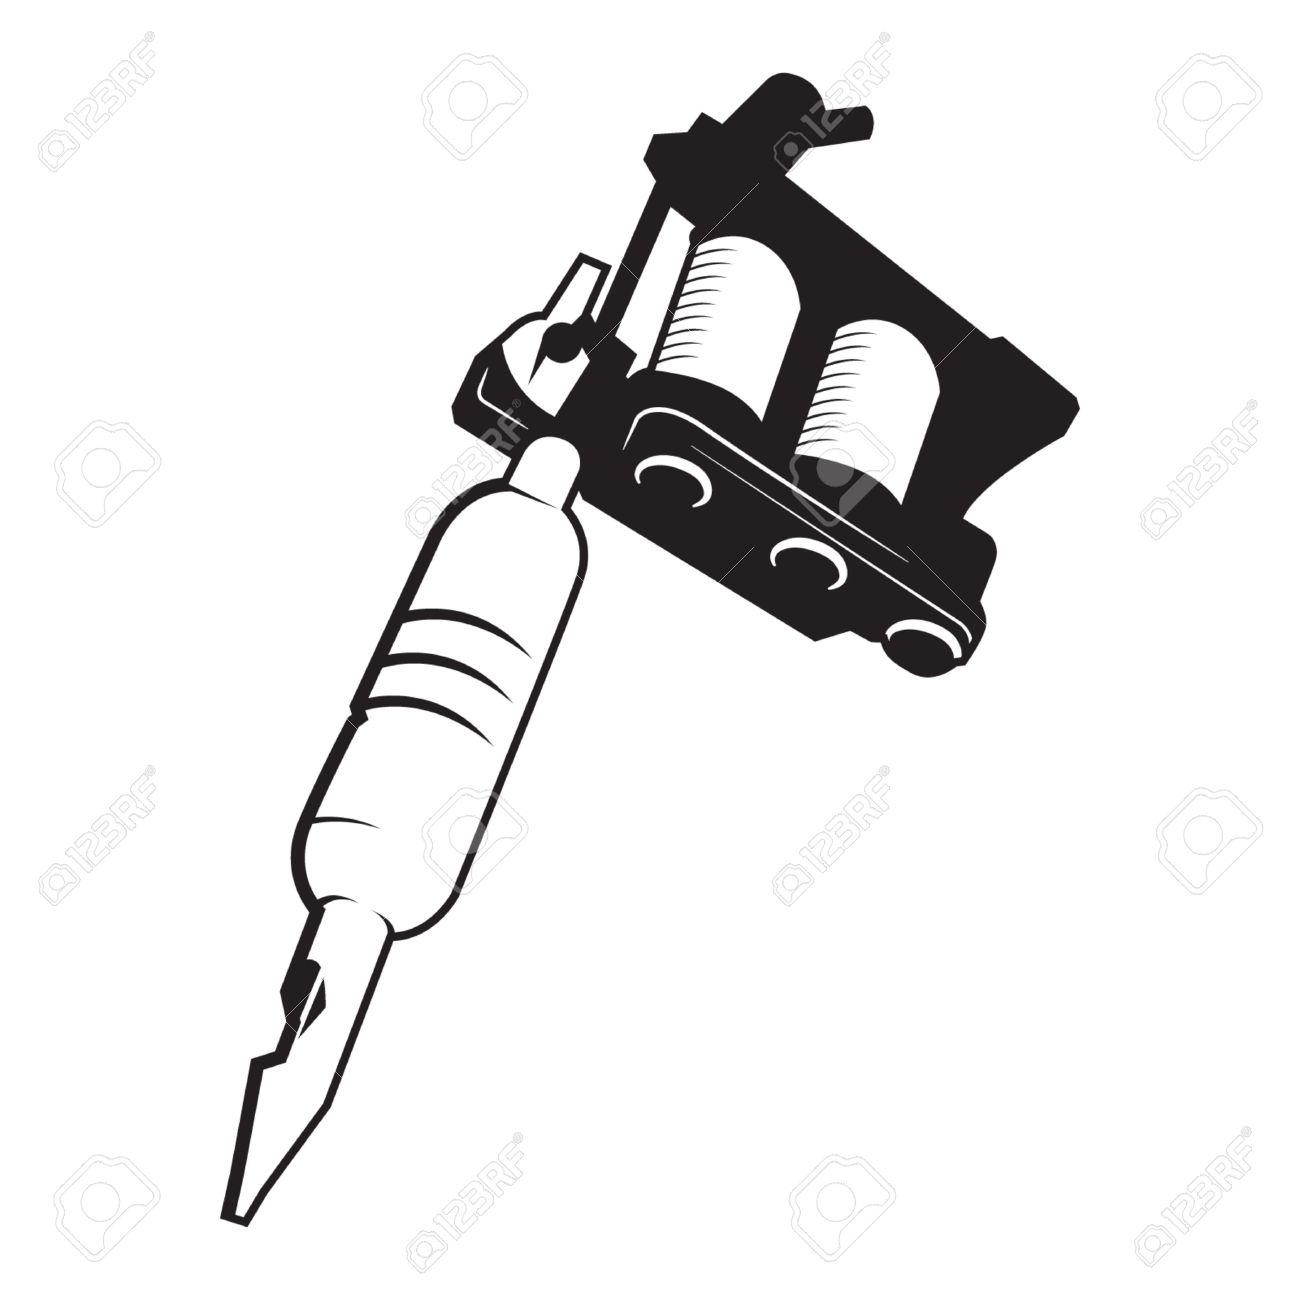 1 576 tattoo machine stock vector illustration and royalty free rh 123rf com